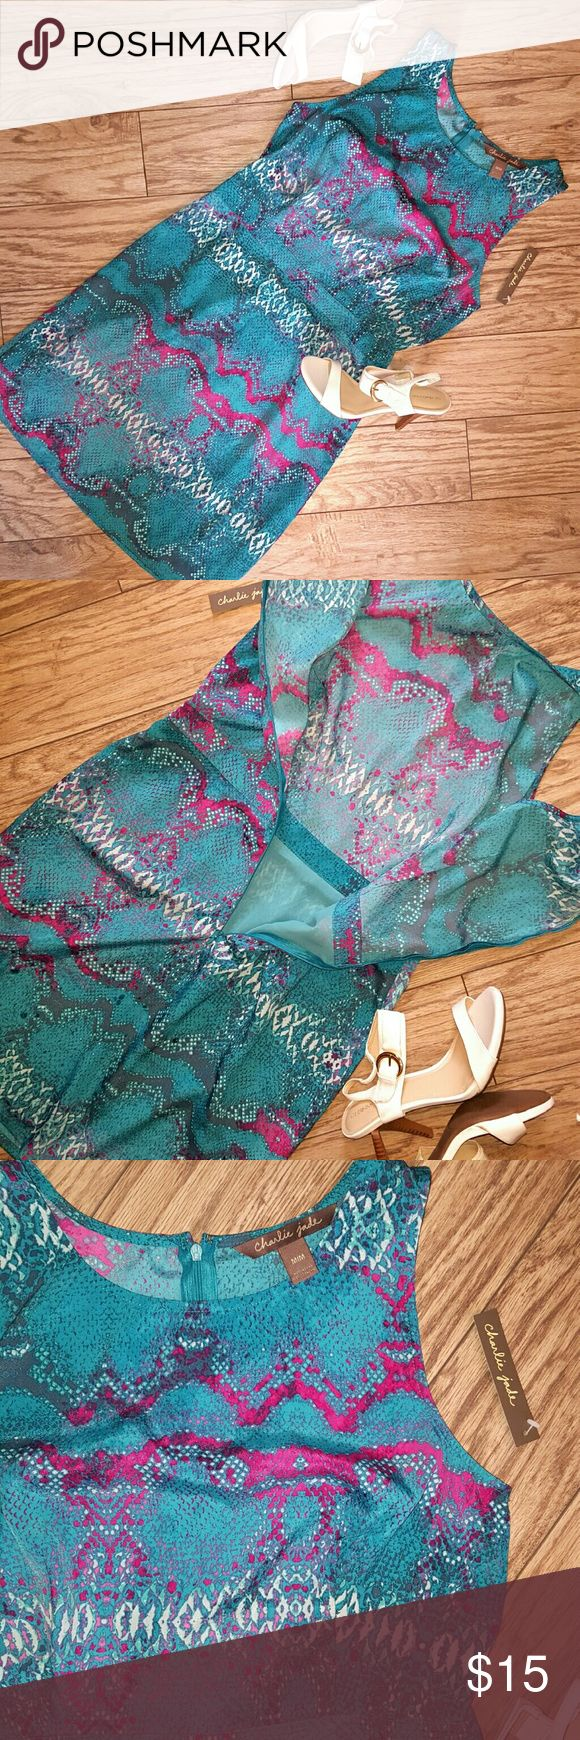 Bright Snake Skin Dress size Medium Brand new with tags. Dress is size medium but runs more like a small. Beautiful bright colors perfect for upcoming spring. Skirt portion of dress has lining. Charlie Jade Dresses